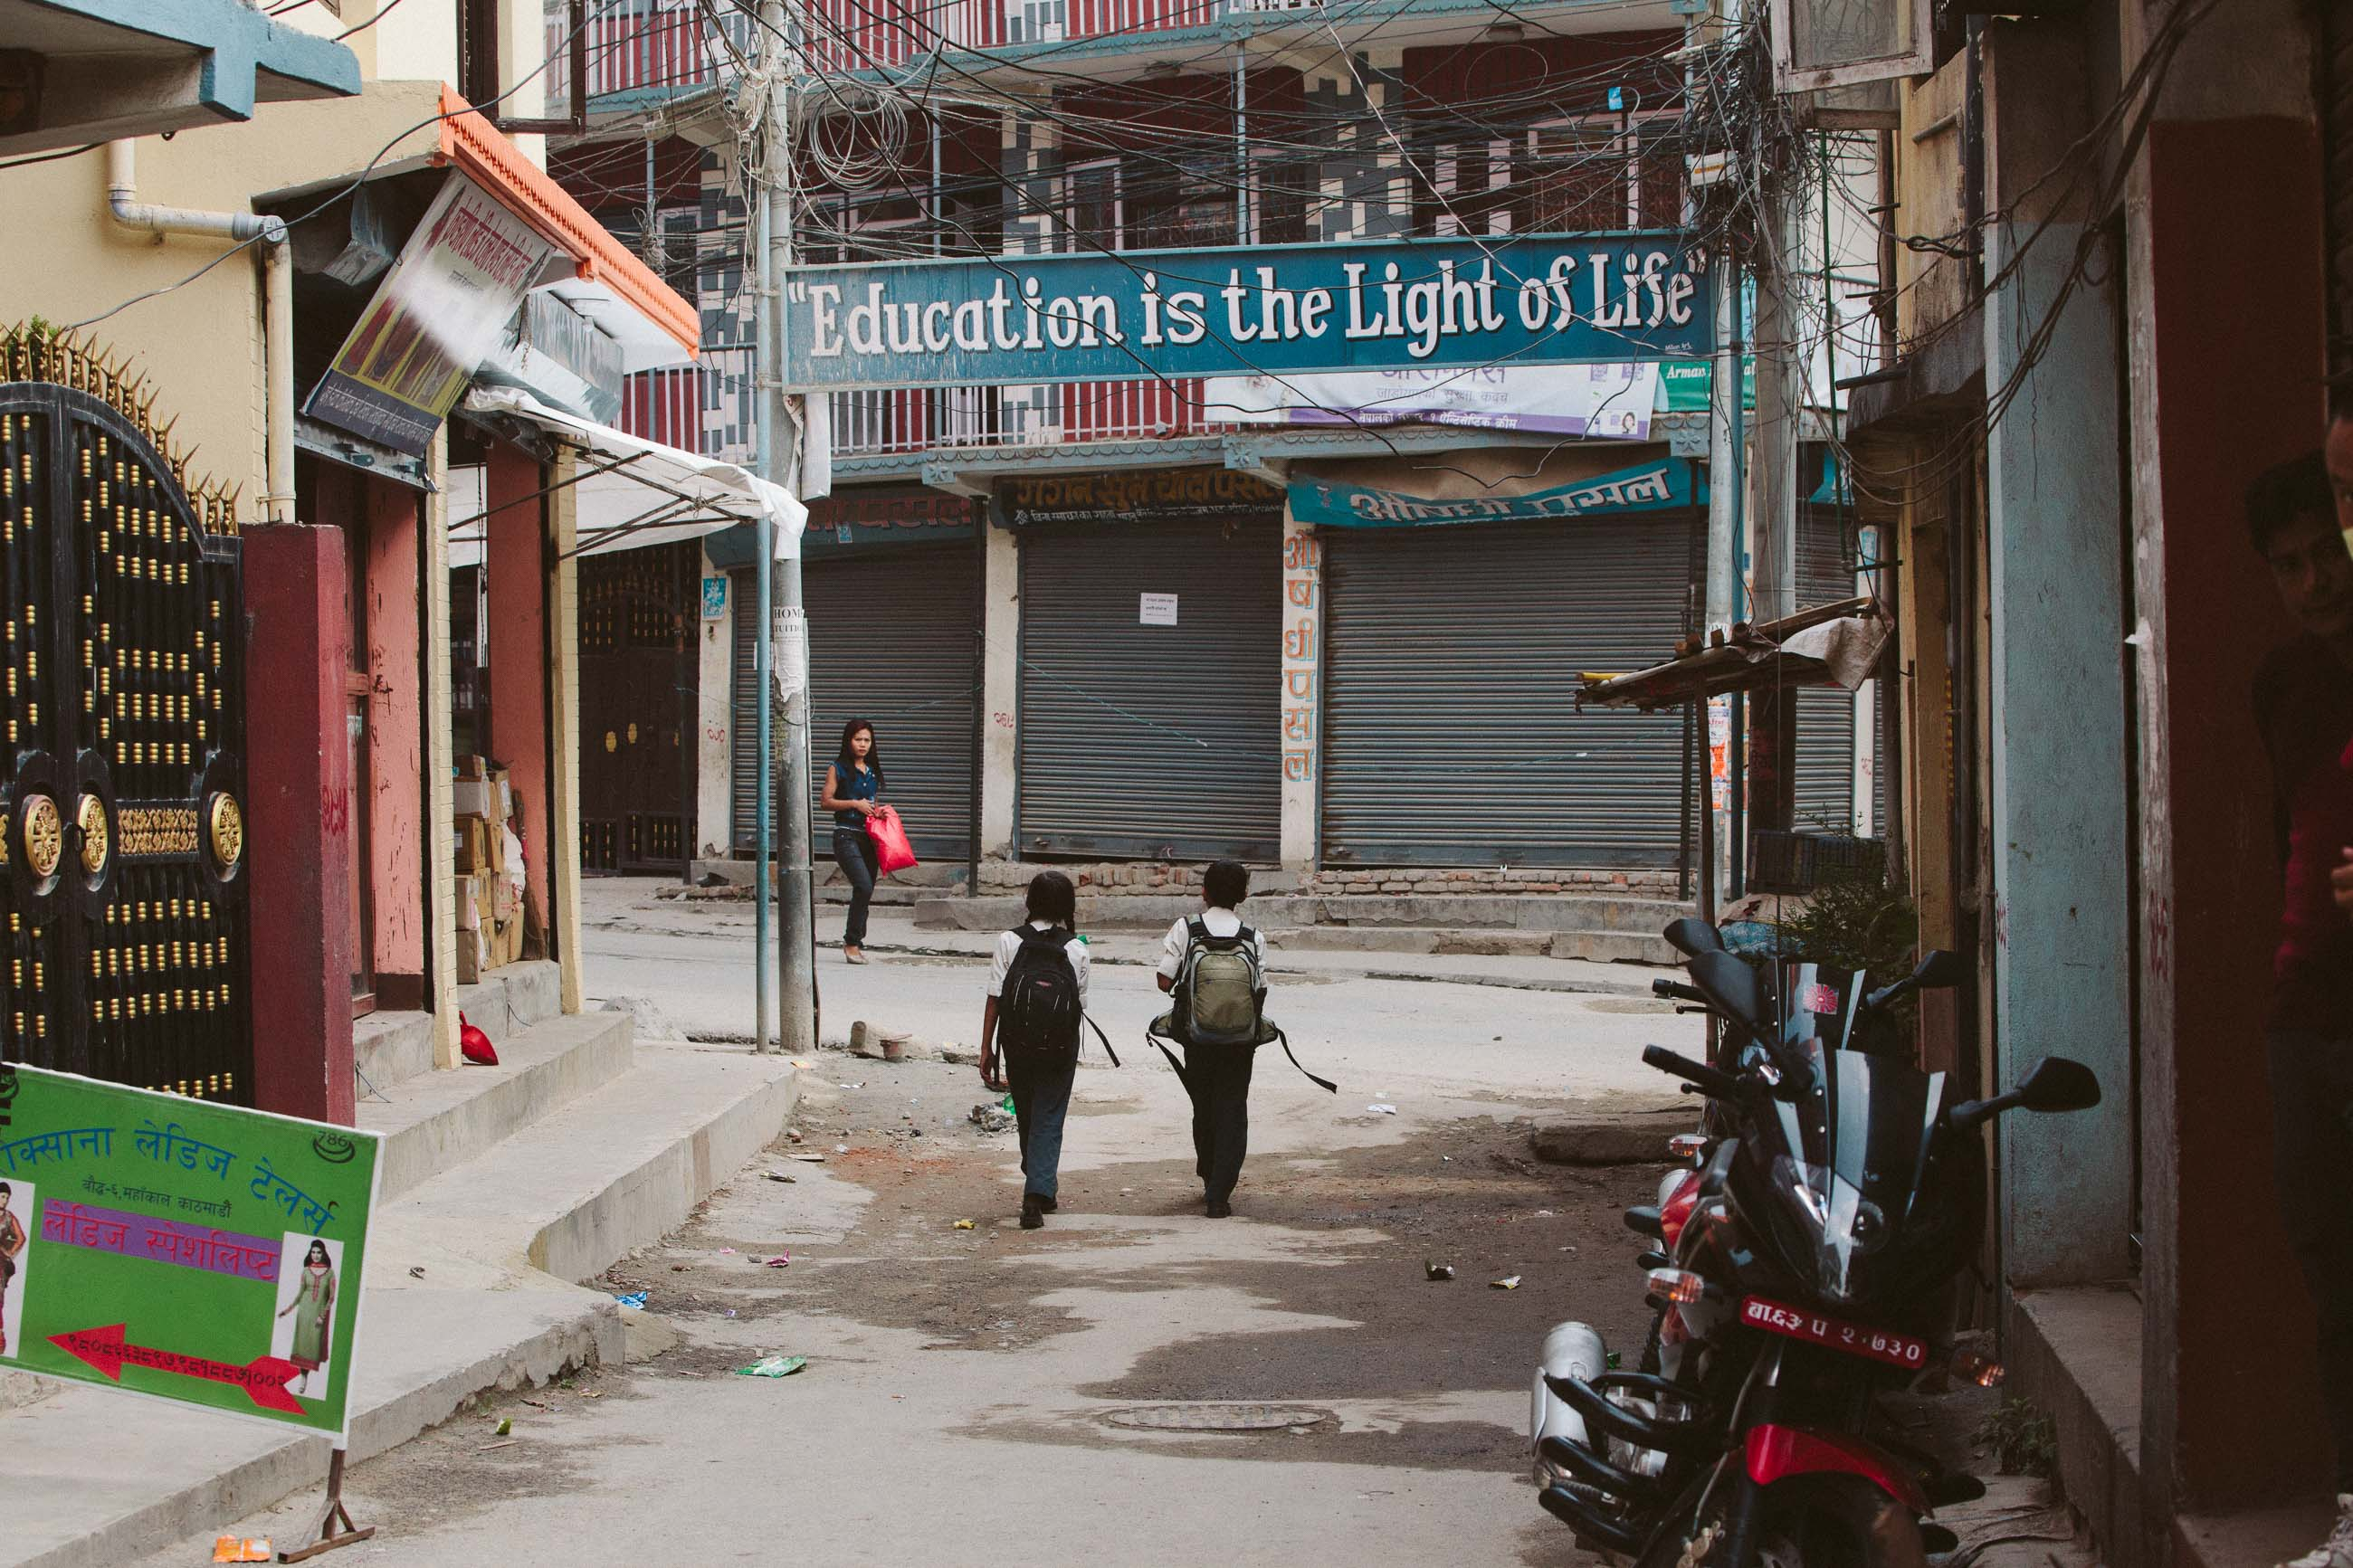 Kathmandu Education, Nepal Jun 2015